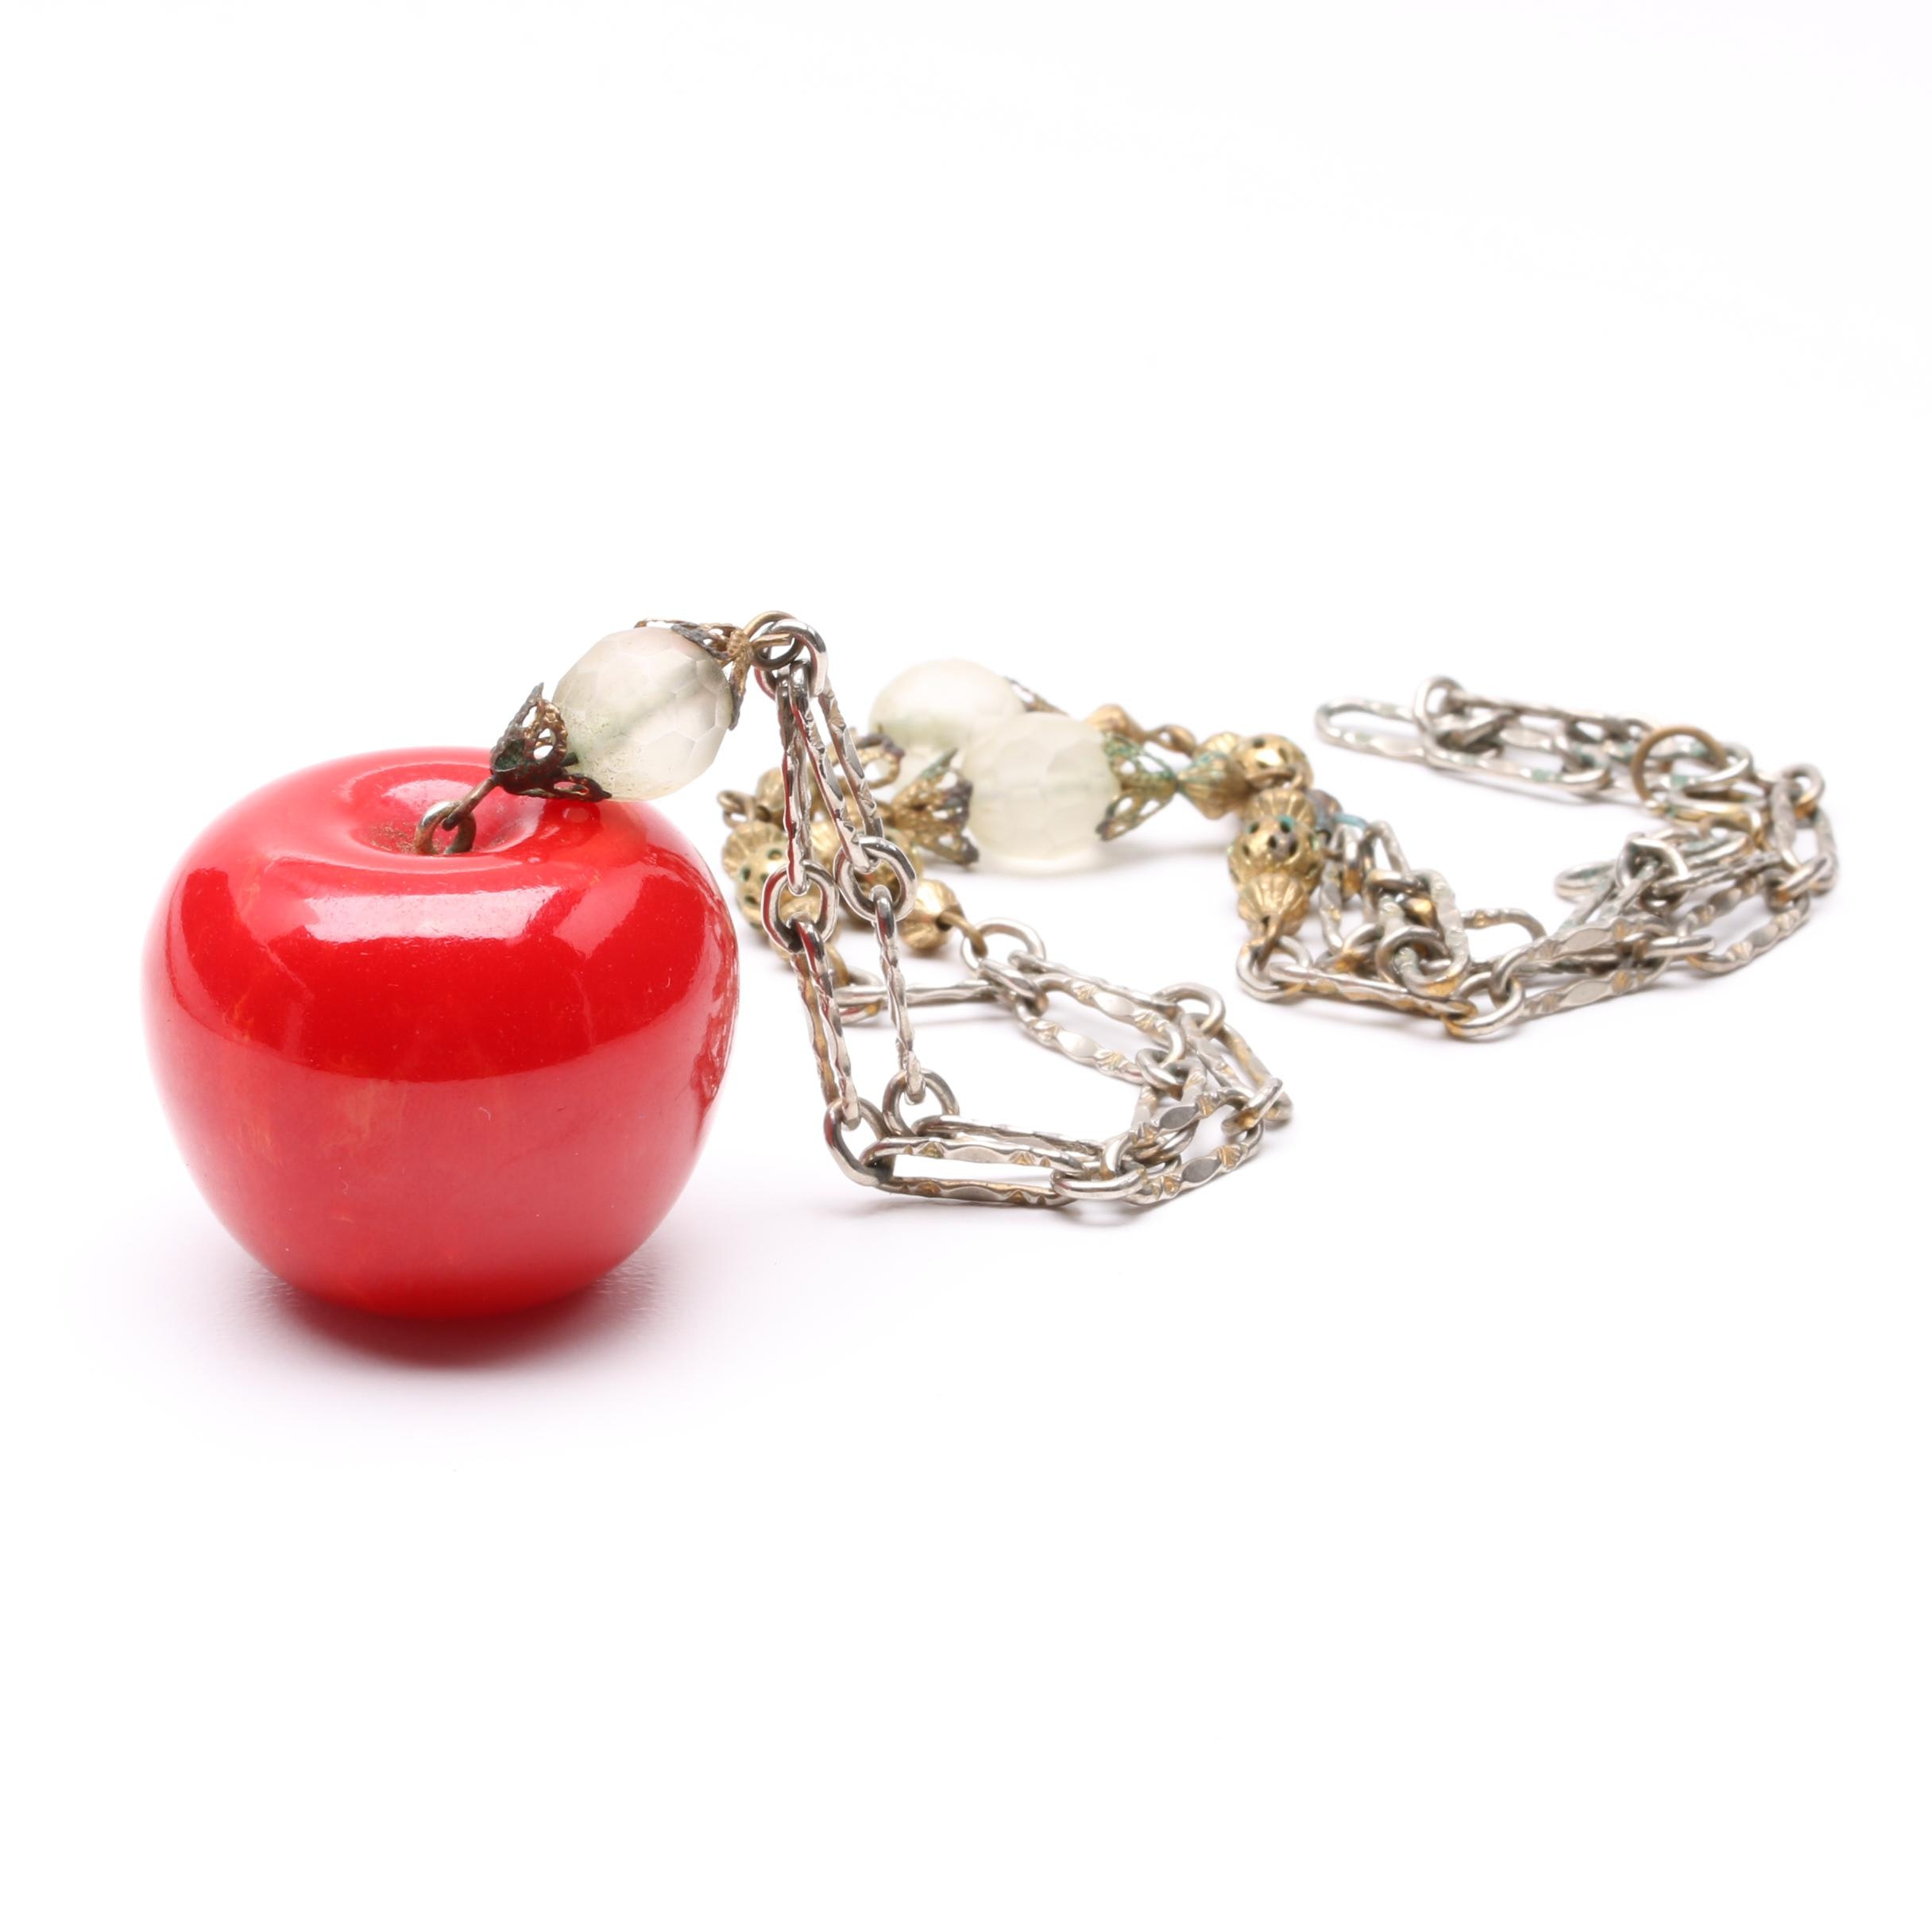 Plastic and Resin Necklace With Apple Pendant